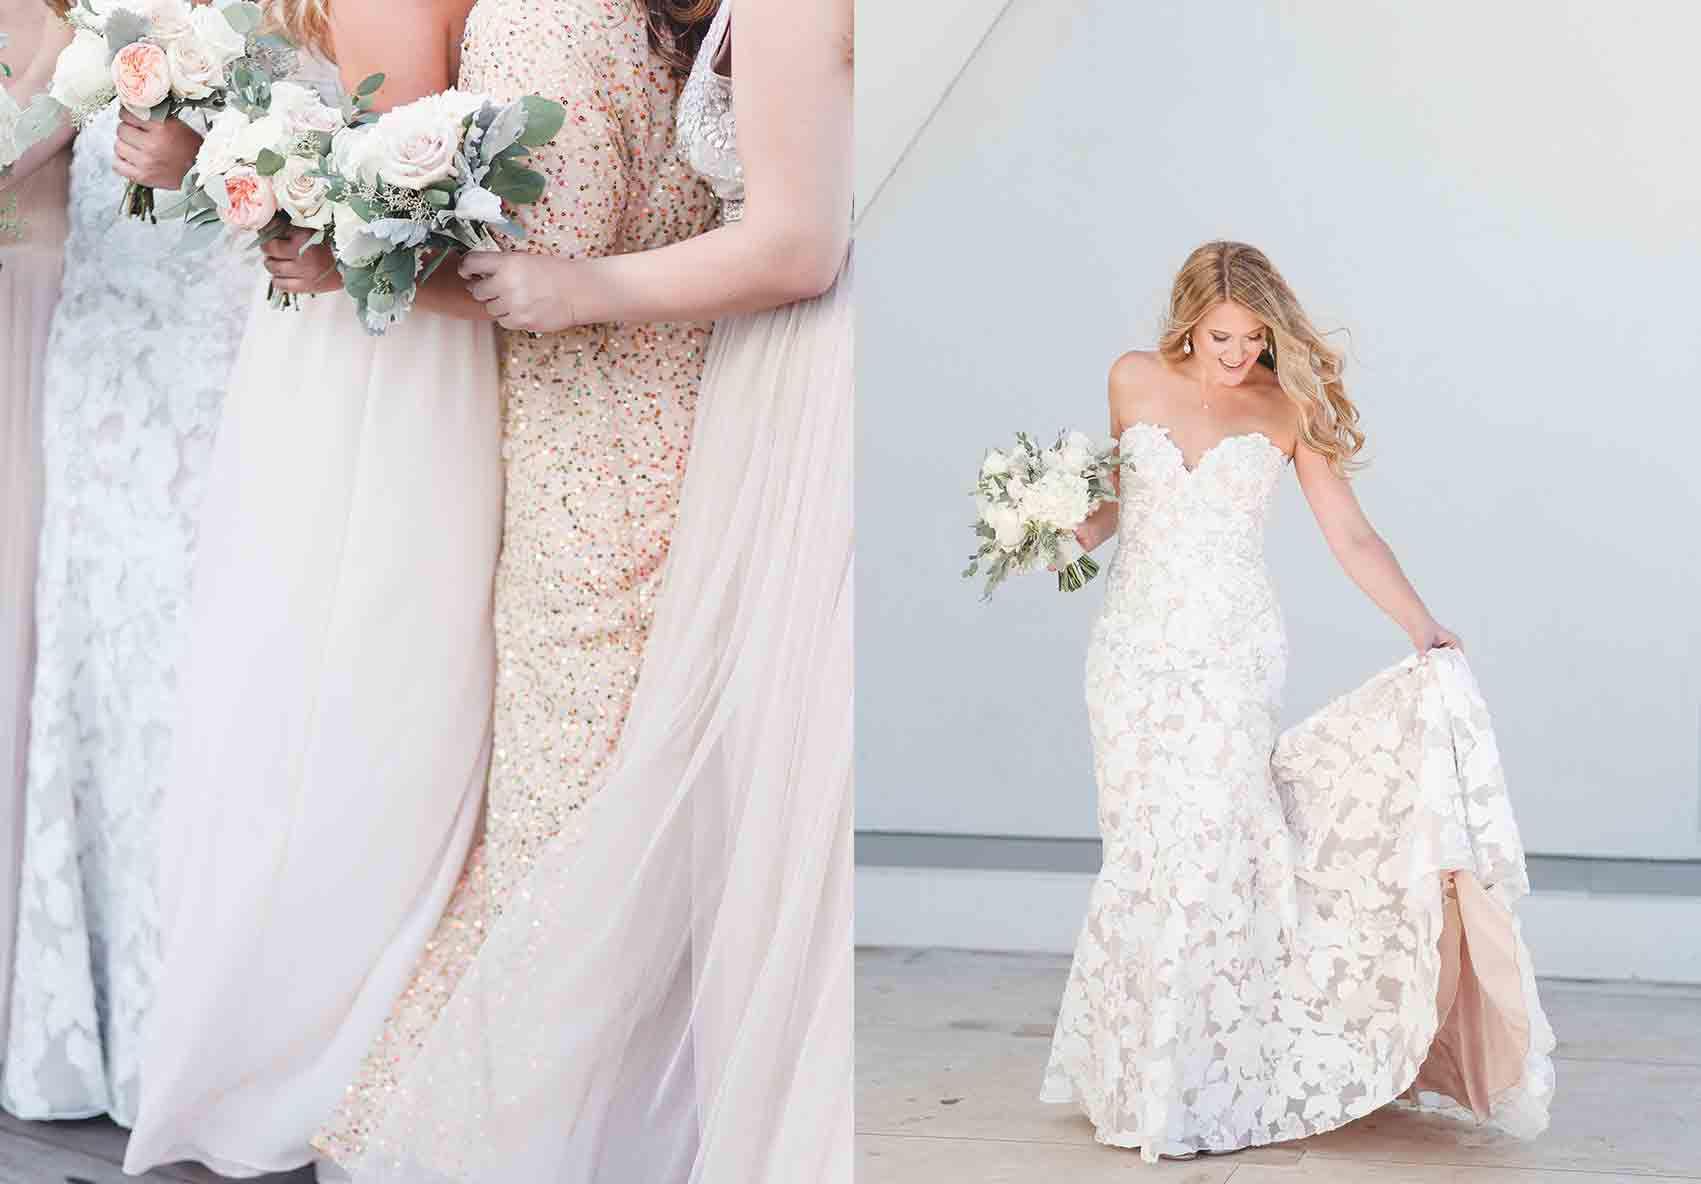 Renaissance Dallas hotel wedding -- Renaissance Dallas hotel rooftop -- wedding at renaissance dallas hotel -- fashion blogger cameron proffitt has romantic dallas rooftop wedding with mixed bridesmaids dresses and neutral color palette